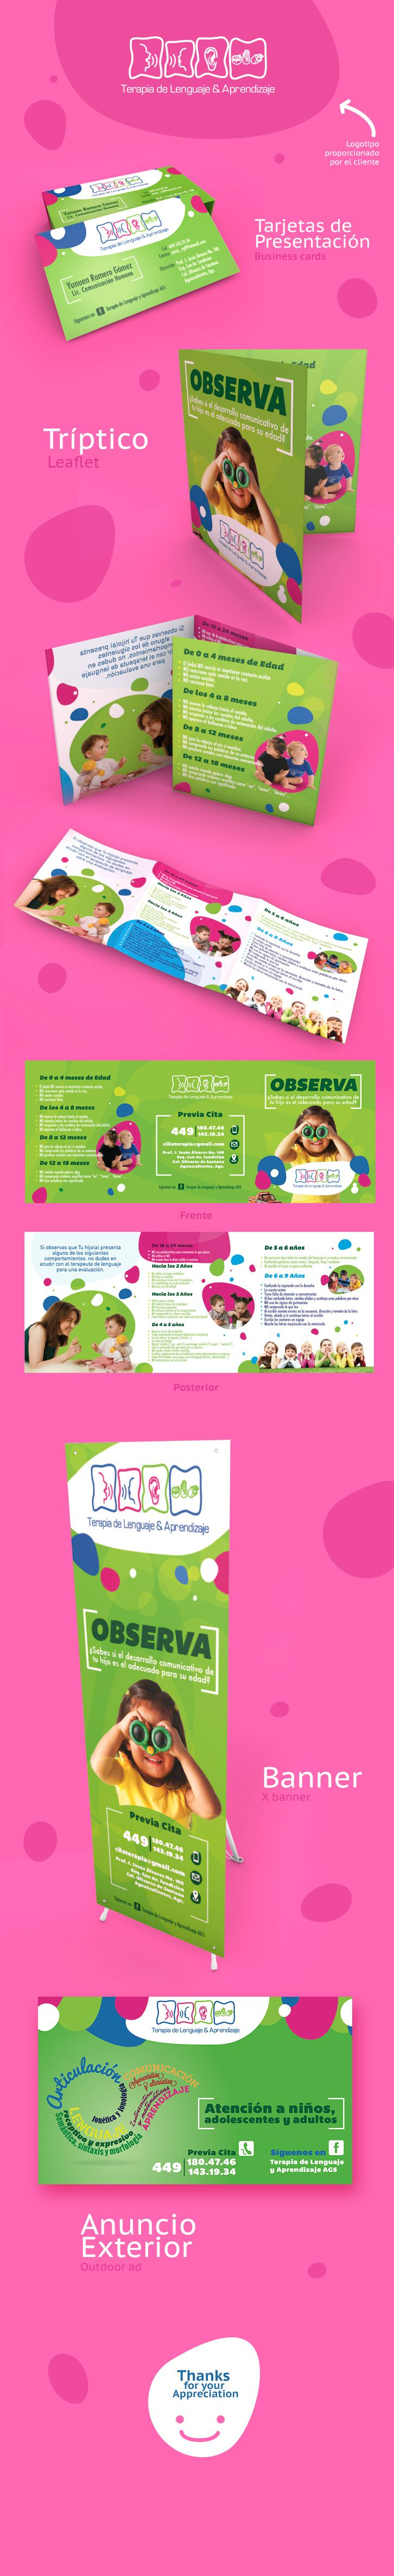 Diseño de Folleto y Display by EÑE Diseño  #folleto #pendon #rollup #display #bussines card #leaflet #kids #languaje #therapy #eñe #card #Ad